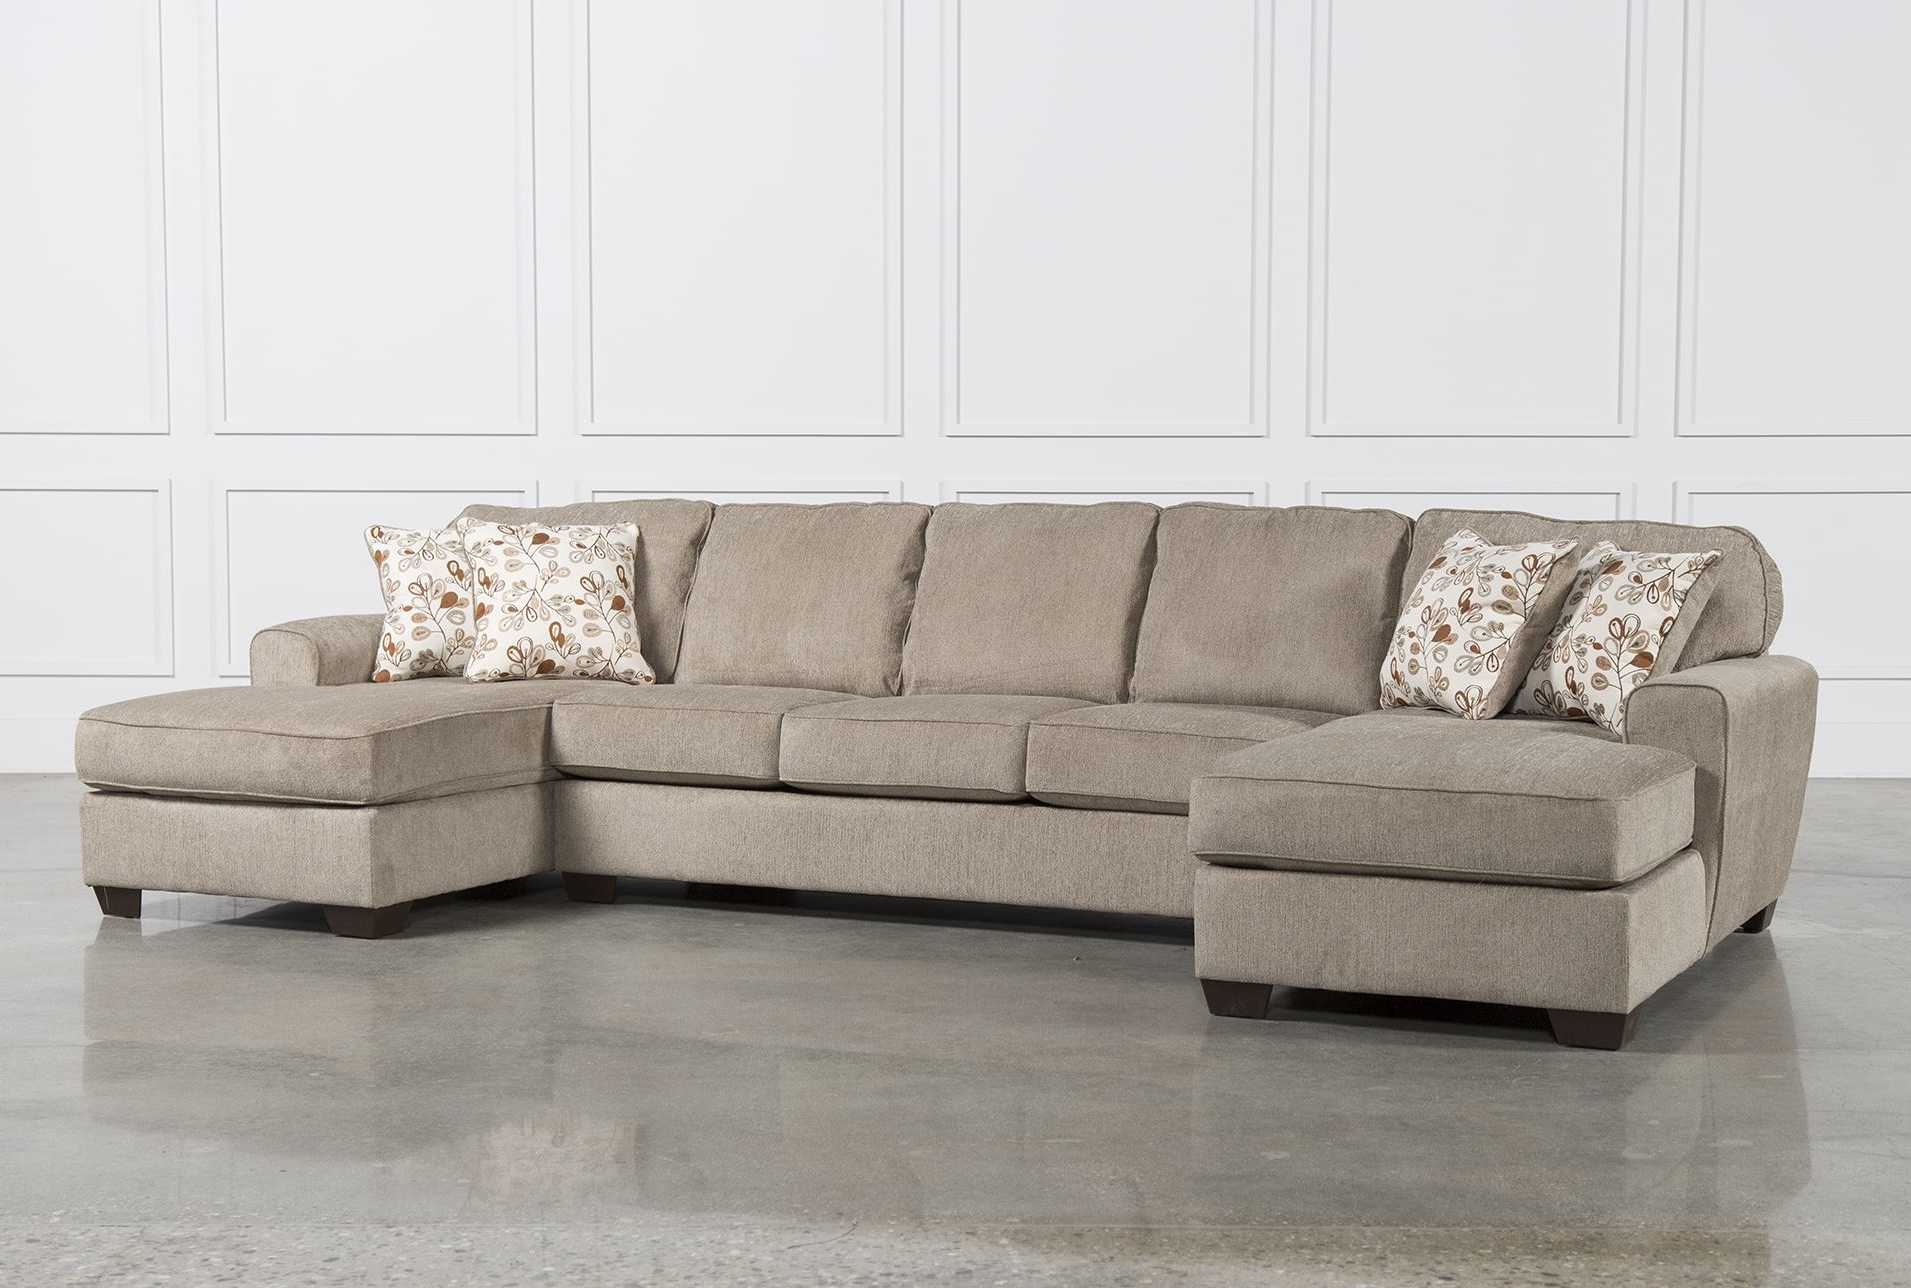 Sectional Sofa With 2 Chaises – Cleanupflorida Intended For Most Up To Date Sectional Sofas With 2 Chaises (View 10 of 15)